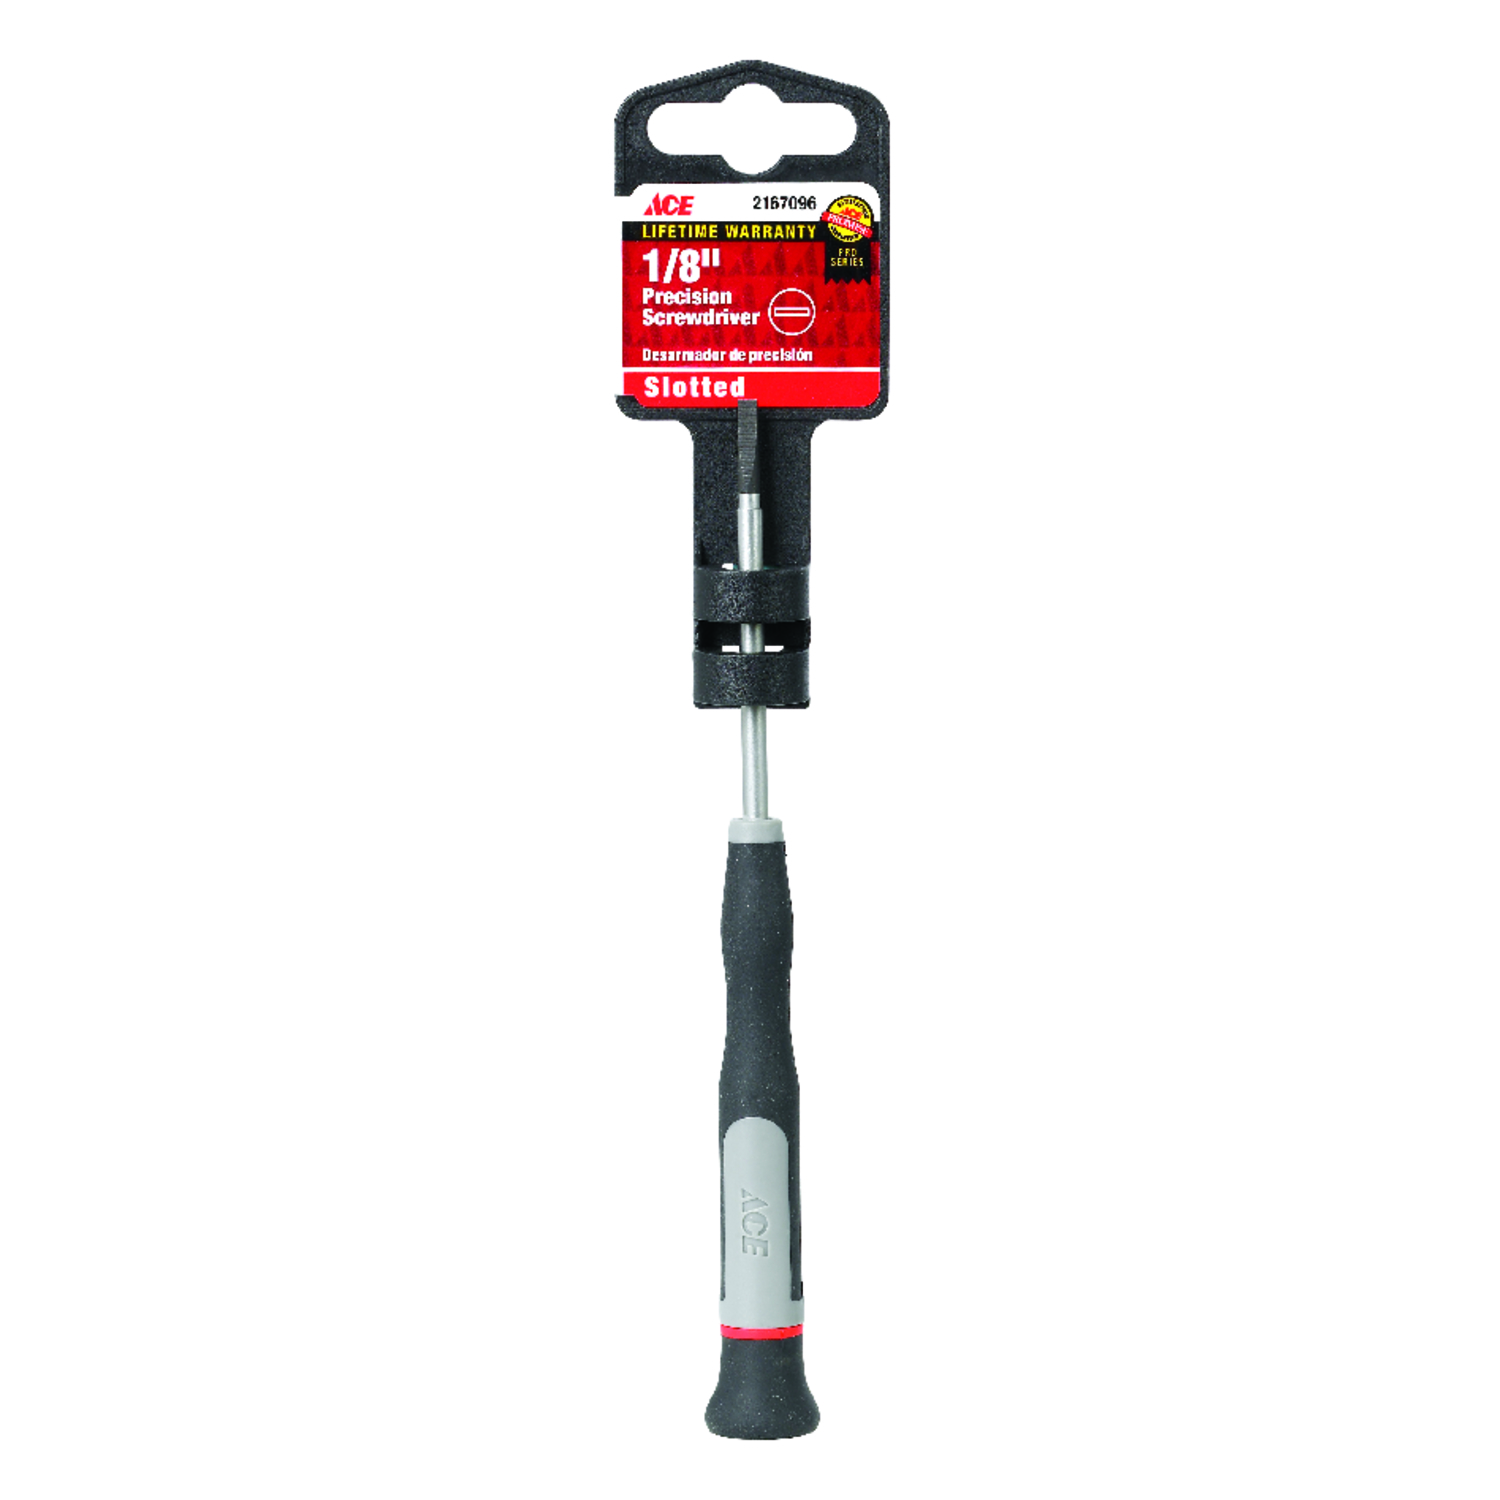 Ace  1/8  2-1/2 in. Precision Screwdriver  Black  1  Slotted  Steel